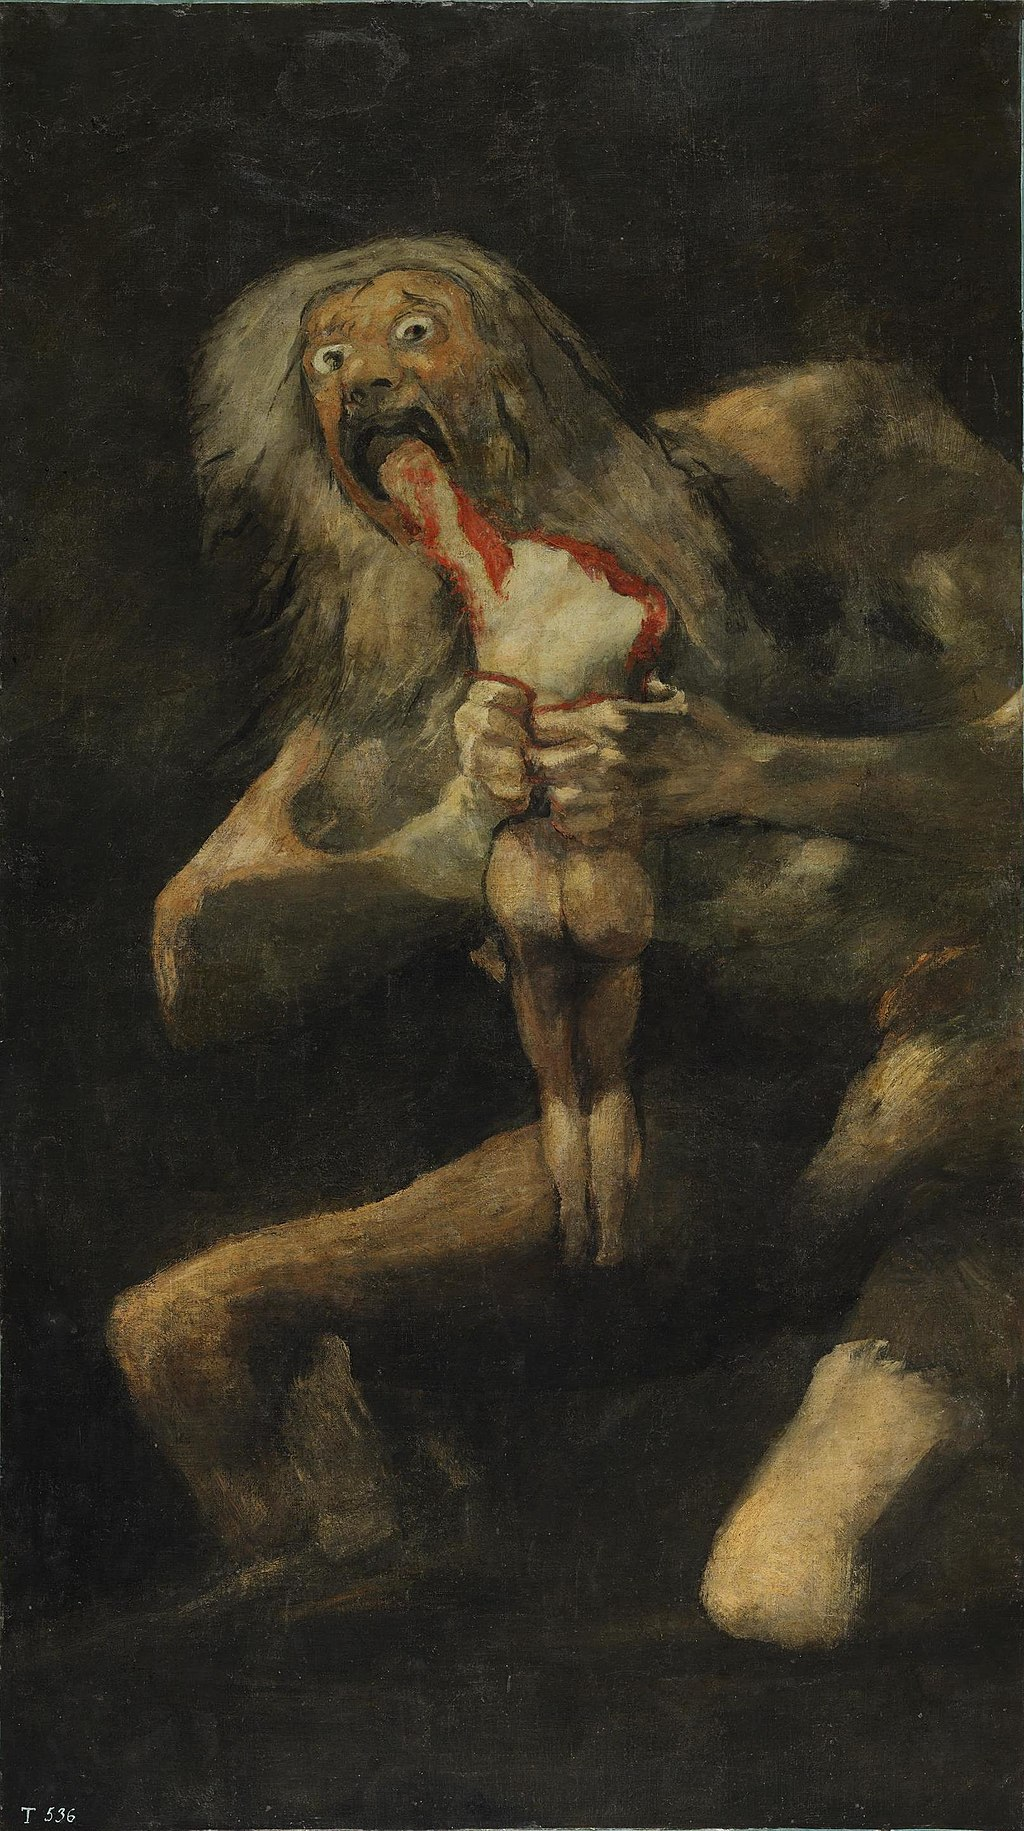 Francisco de Goya, Untitled, known as Saturn Devouring His Son, 1821-93